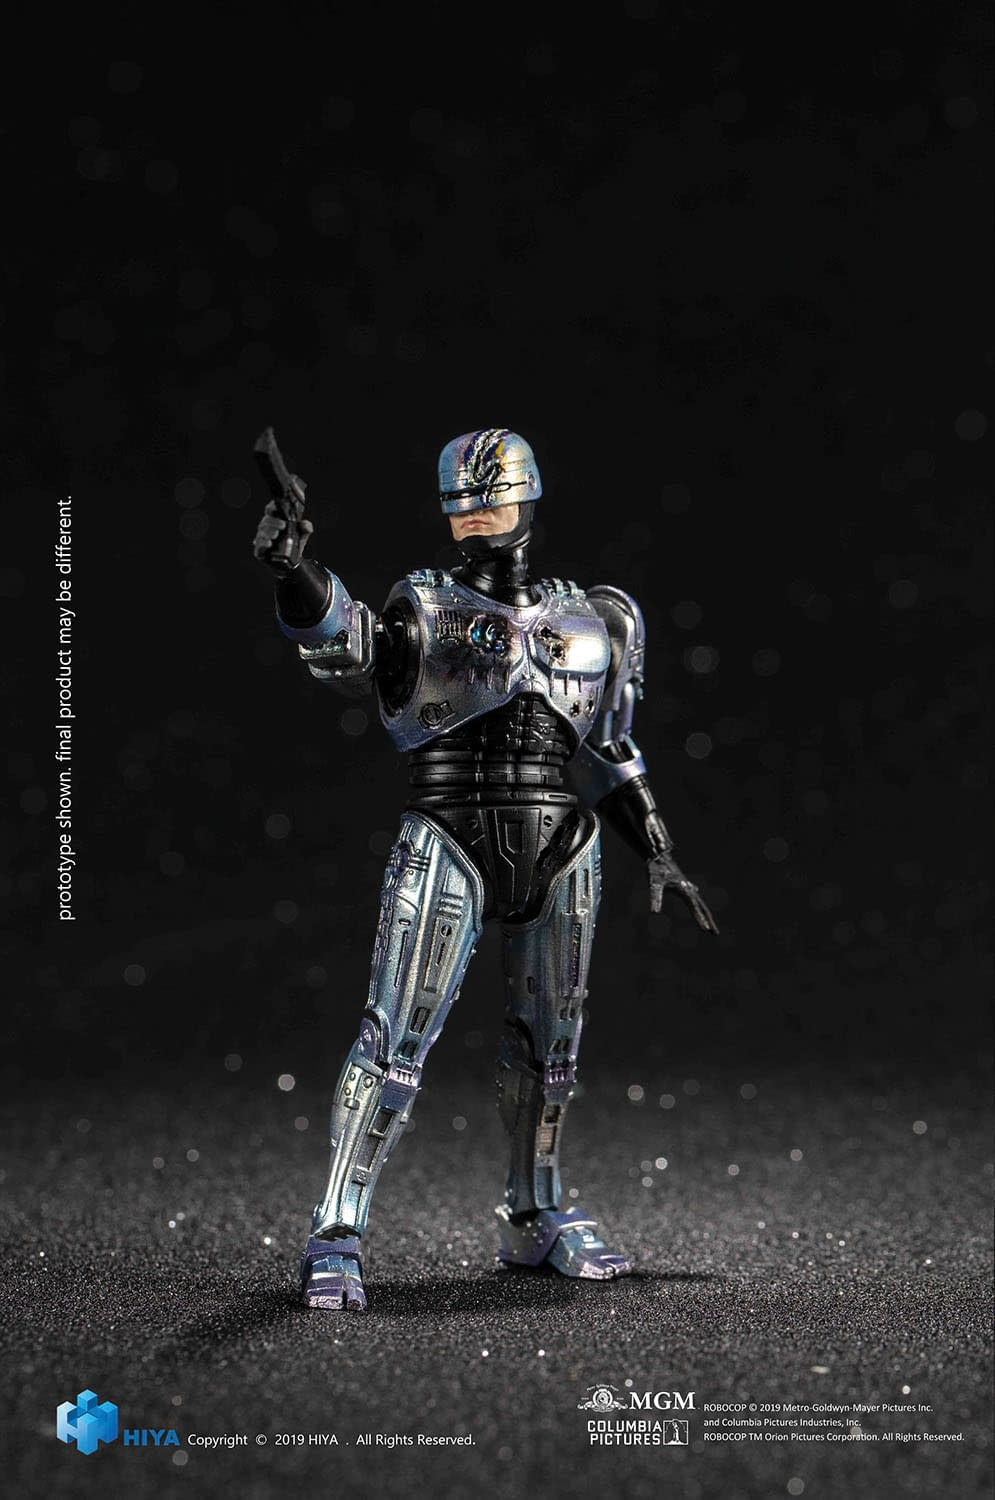 Robocop Comes Back with More Pex Exclusive Figures